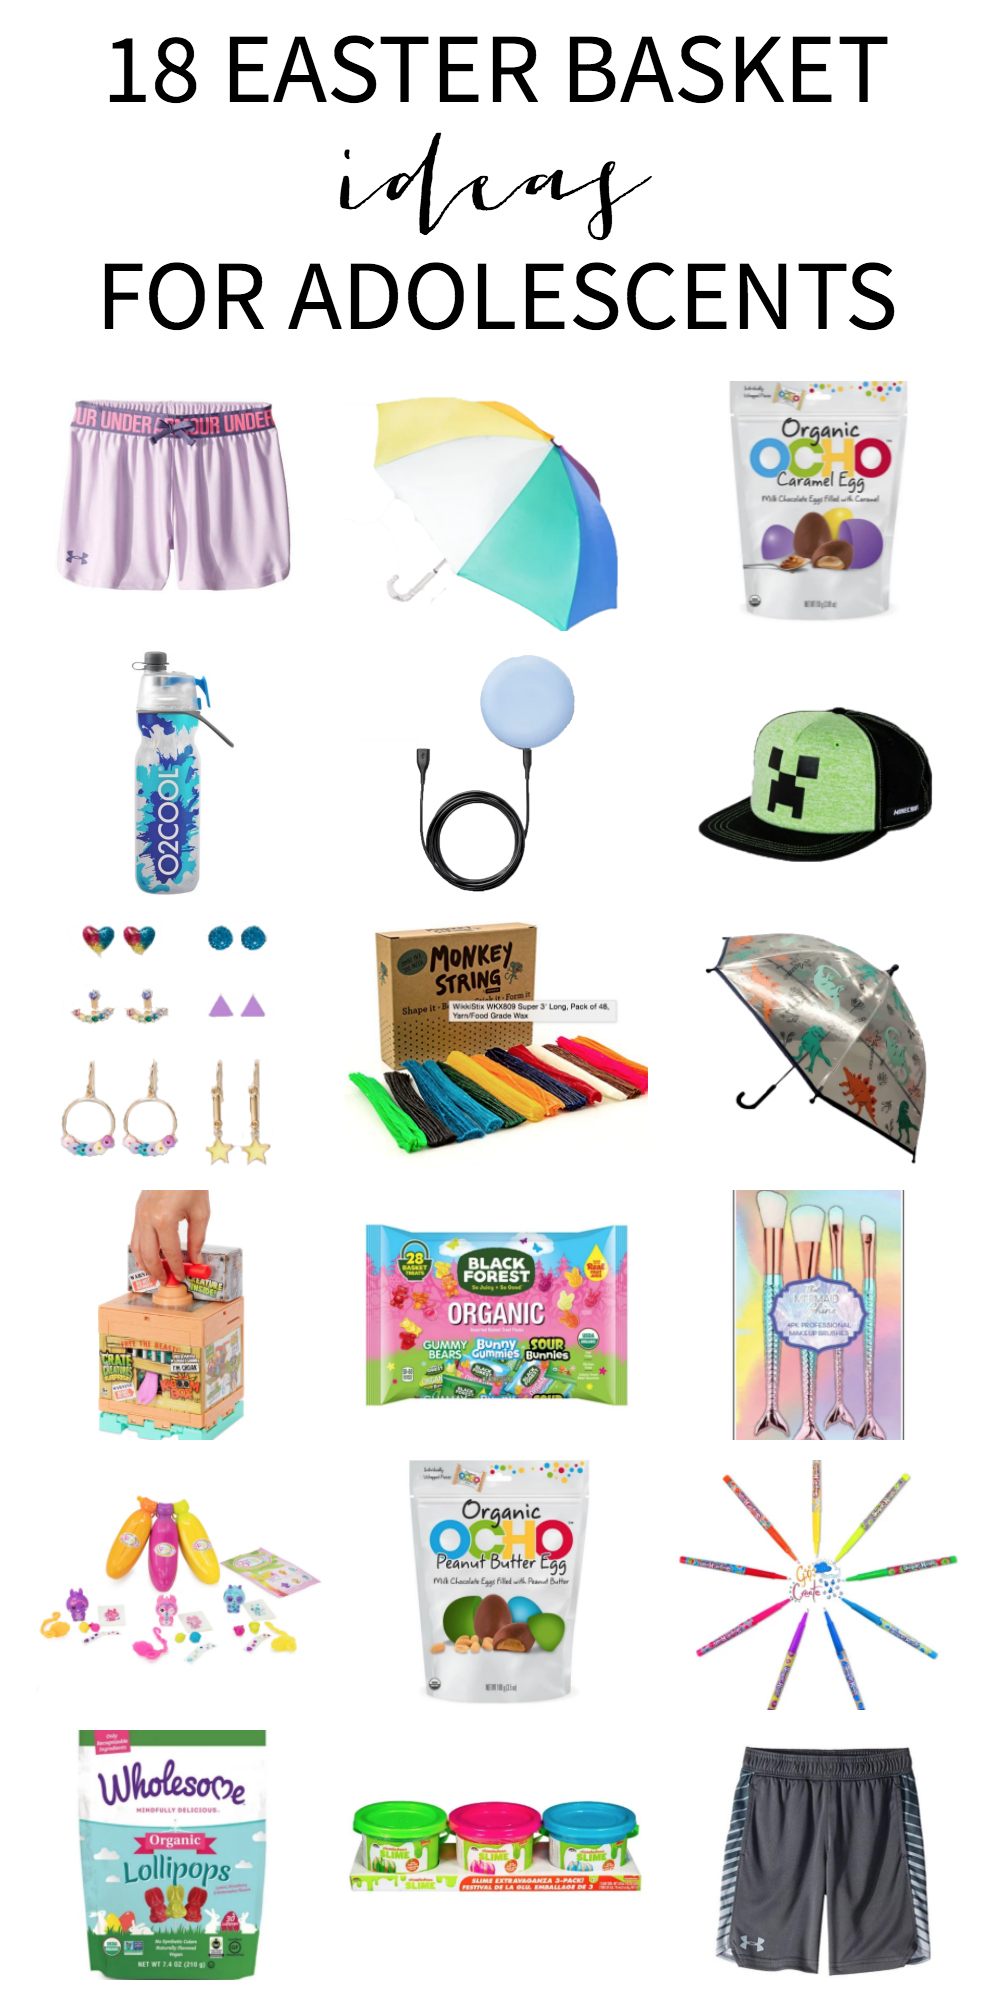 Easter basket ideas for adolescents. Nothing over $20 and all things your kids will actually use!